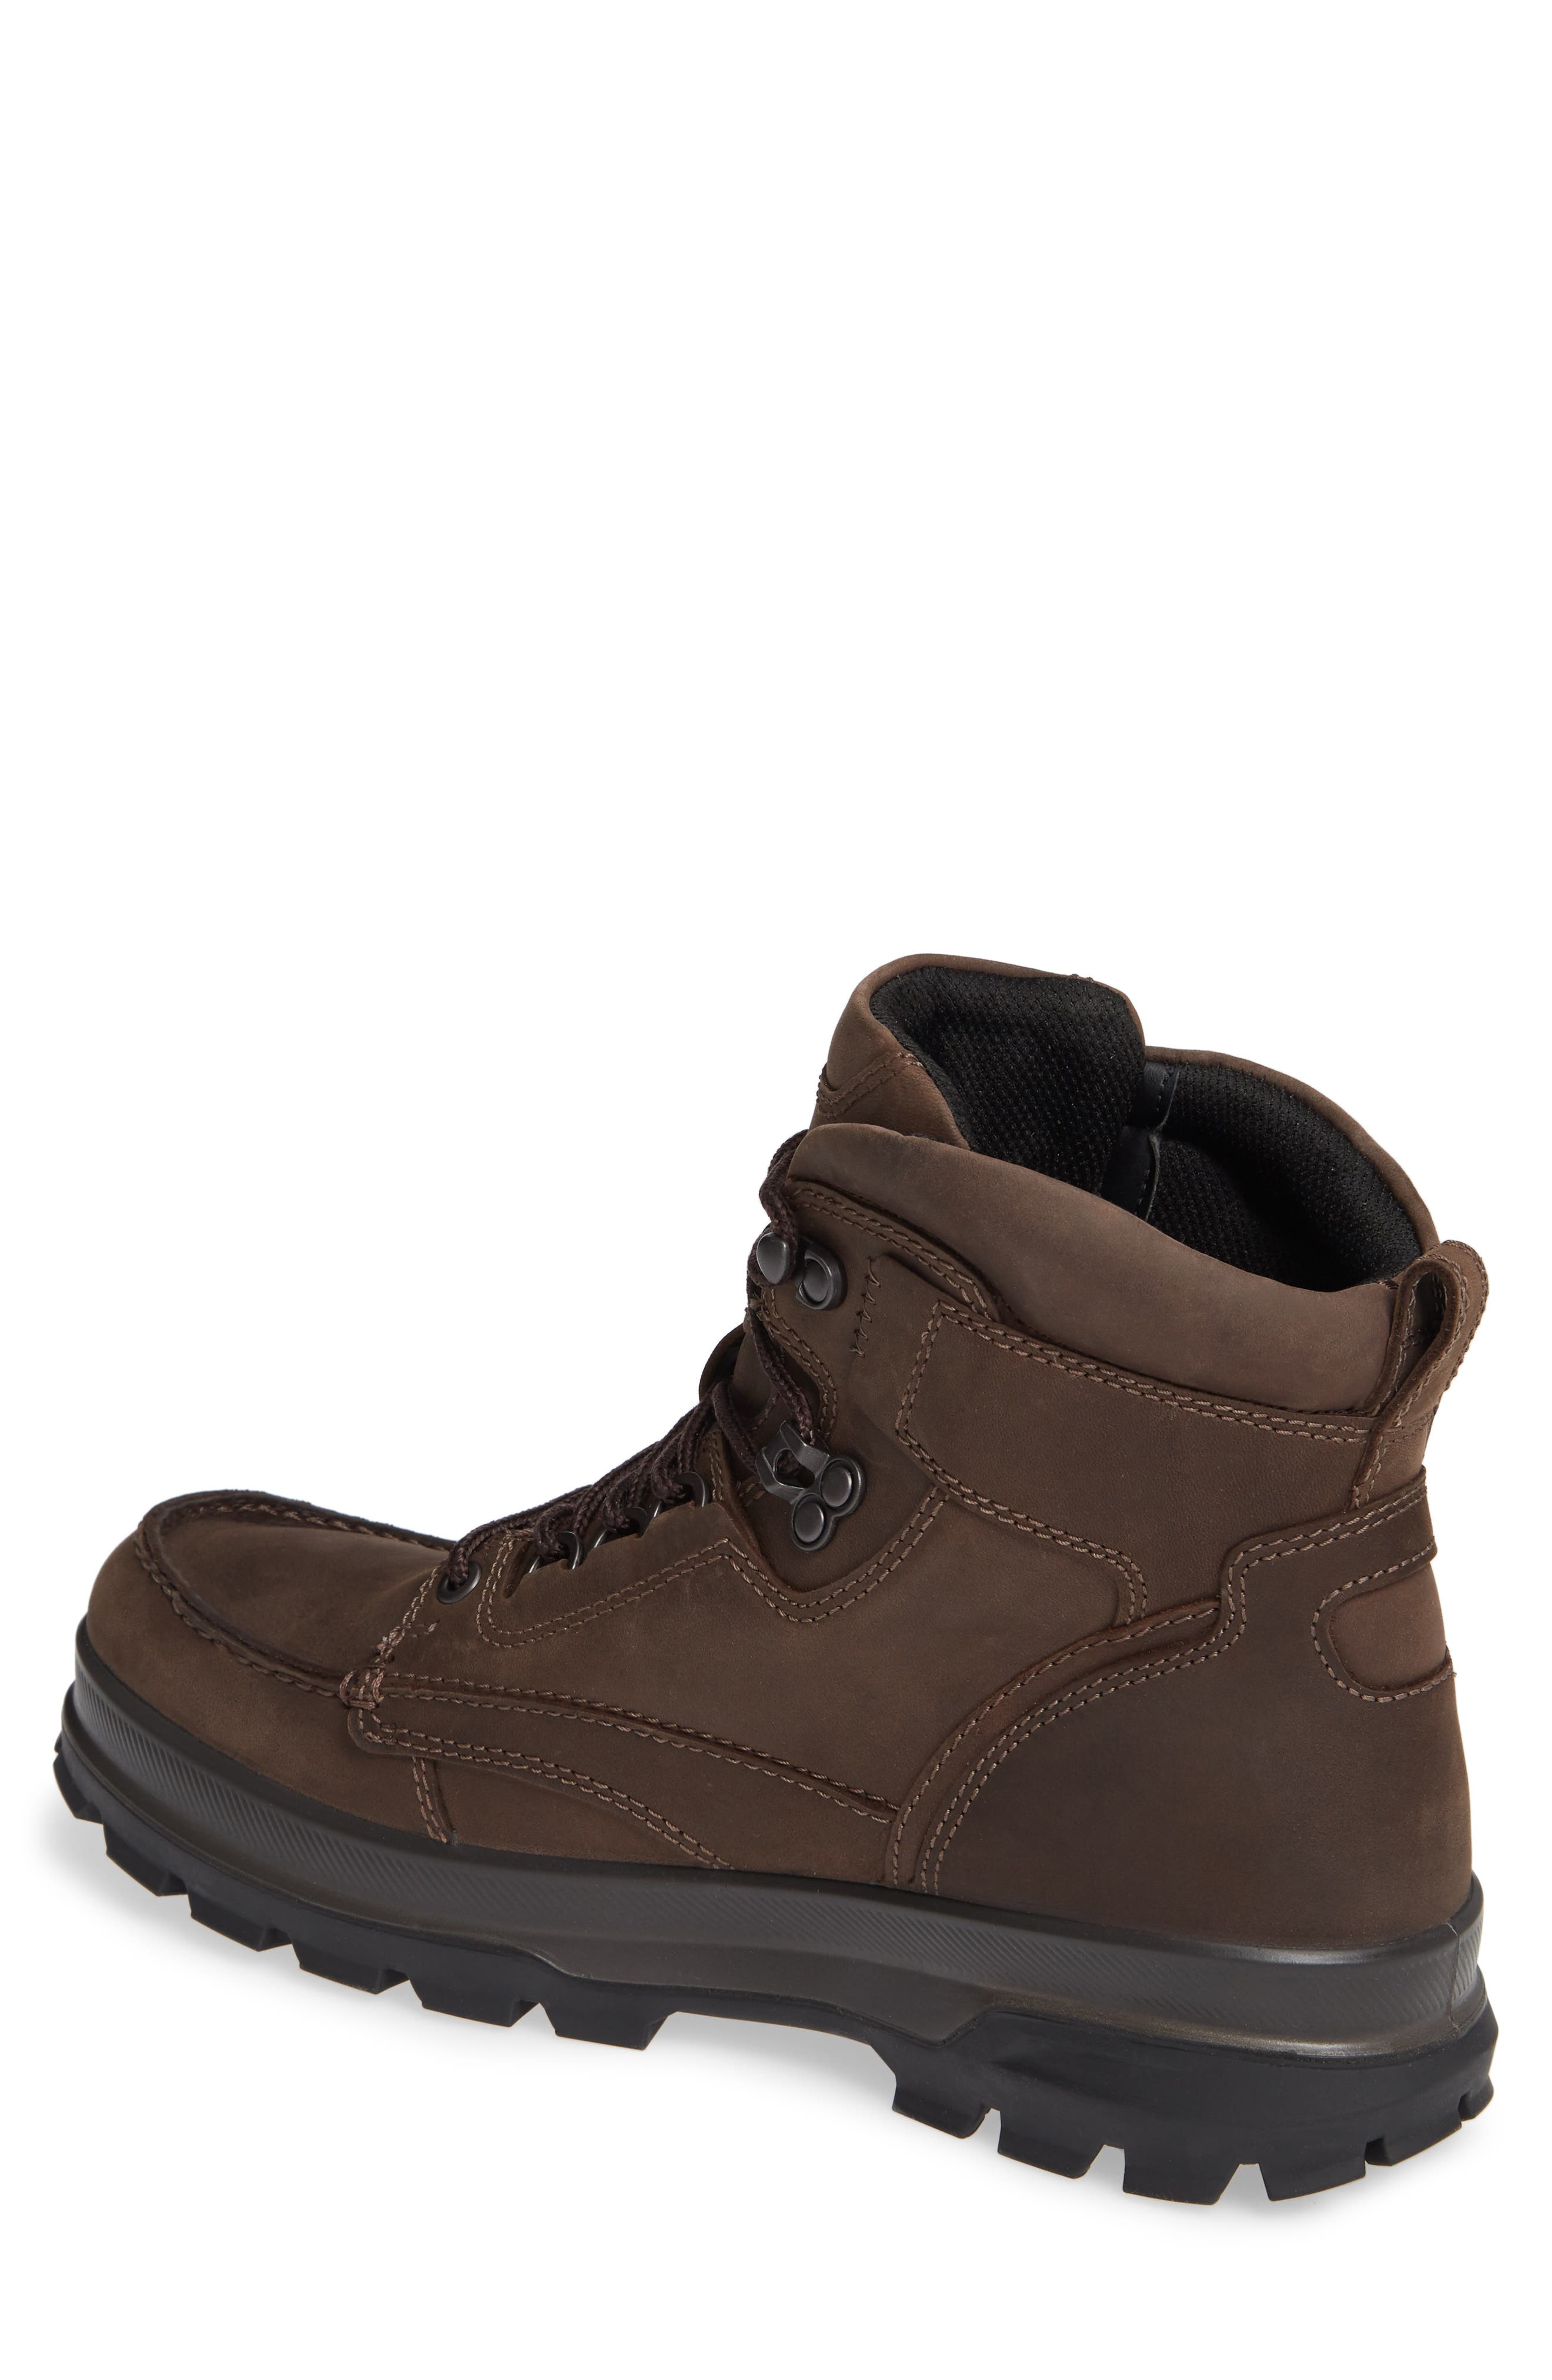 ECCO,                             Rugged Track Gore-Tex<sup>®</sup> Waterproof Boot,                             Alternate thumbnail 2, color,                             217